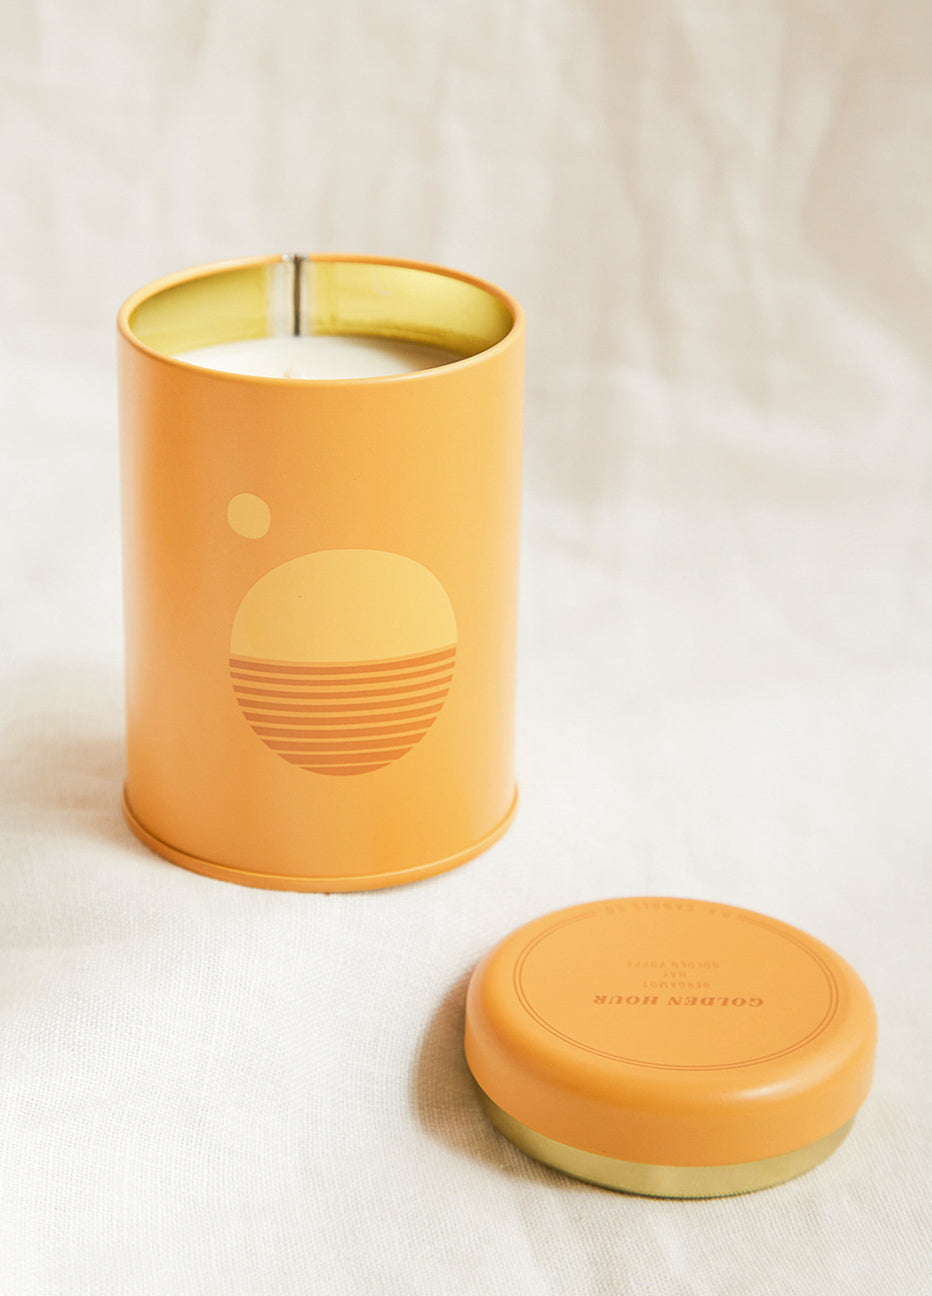 PF & Co Golden Hour Candle